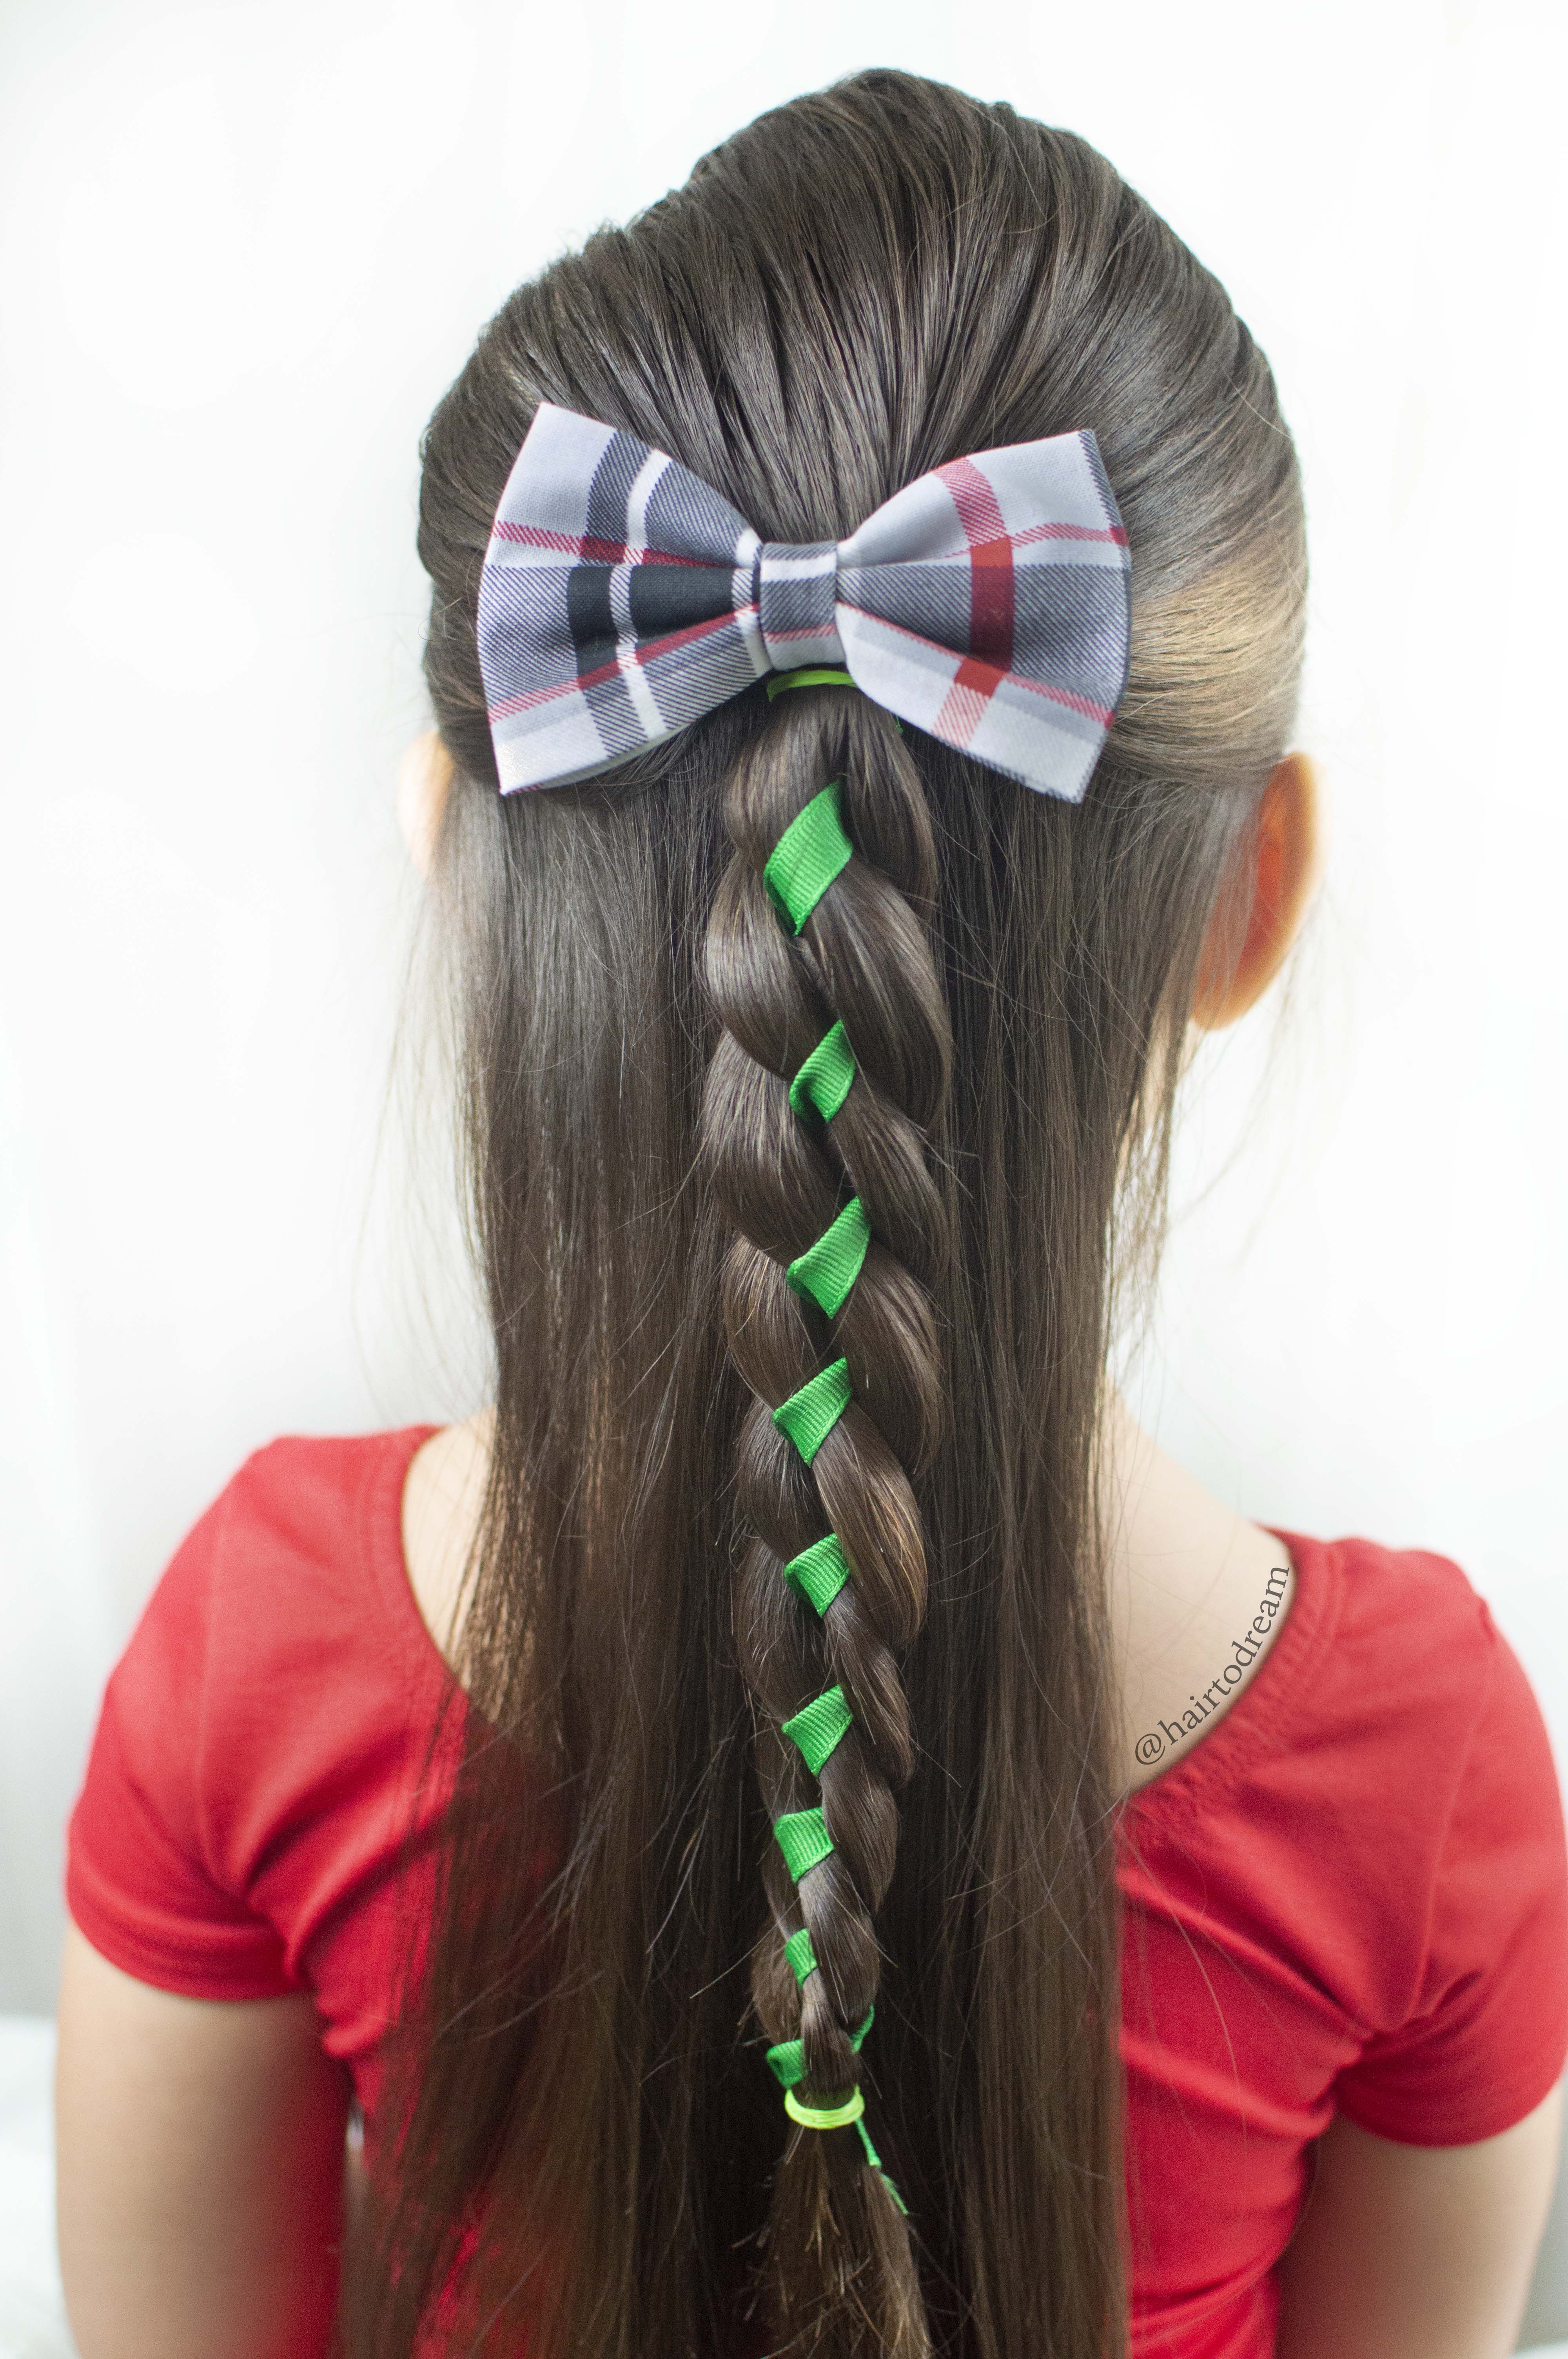 Christmas Hairstyles For Girls.Cute And Simple Holiday Hairstyle For Girls Follow Along